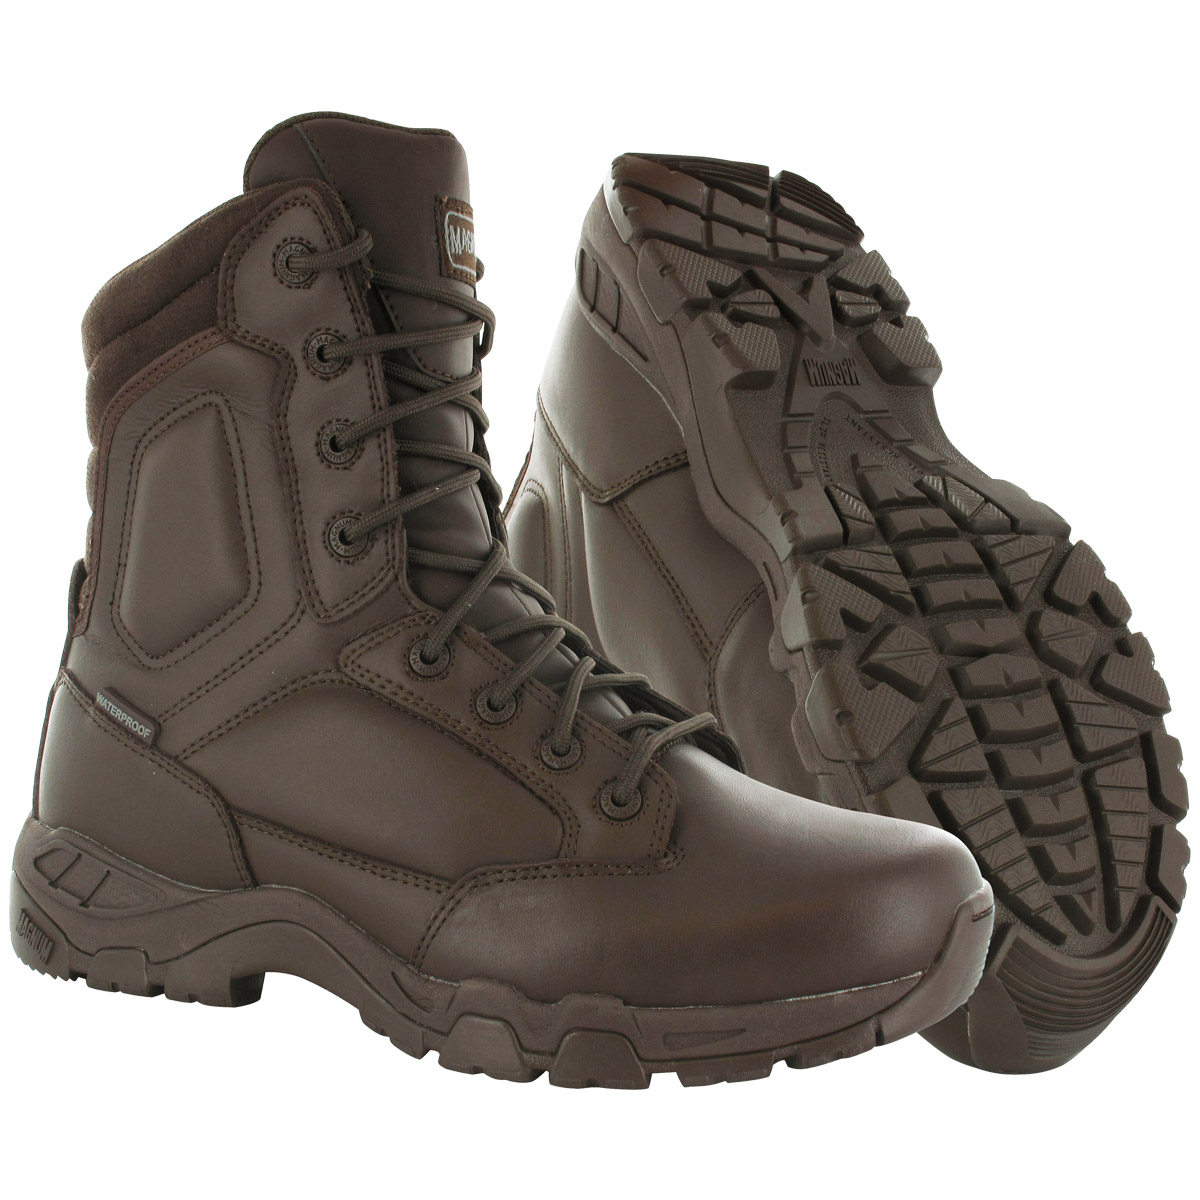 Magnum Boots & Apparel UK | Military 1st